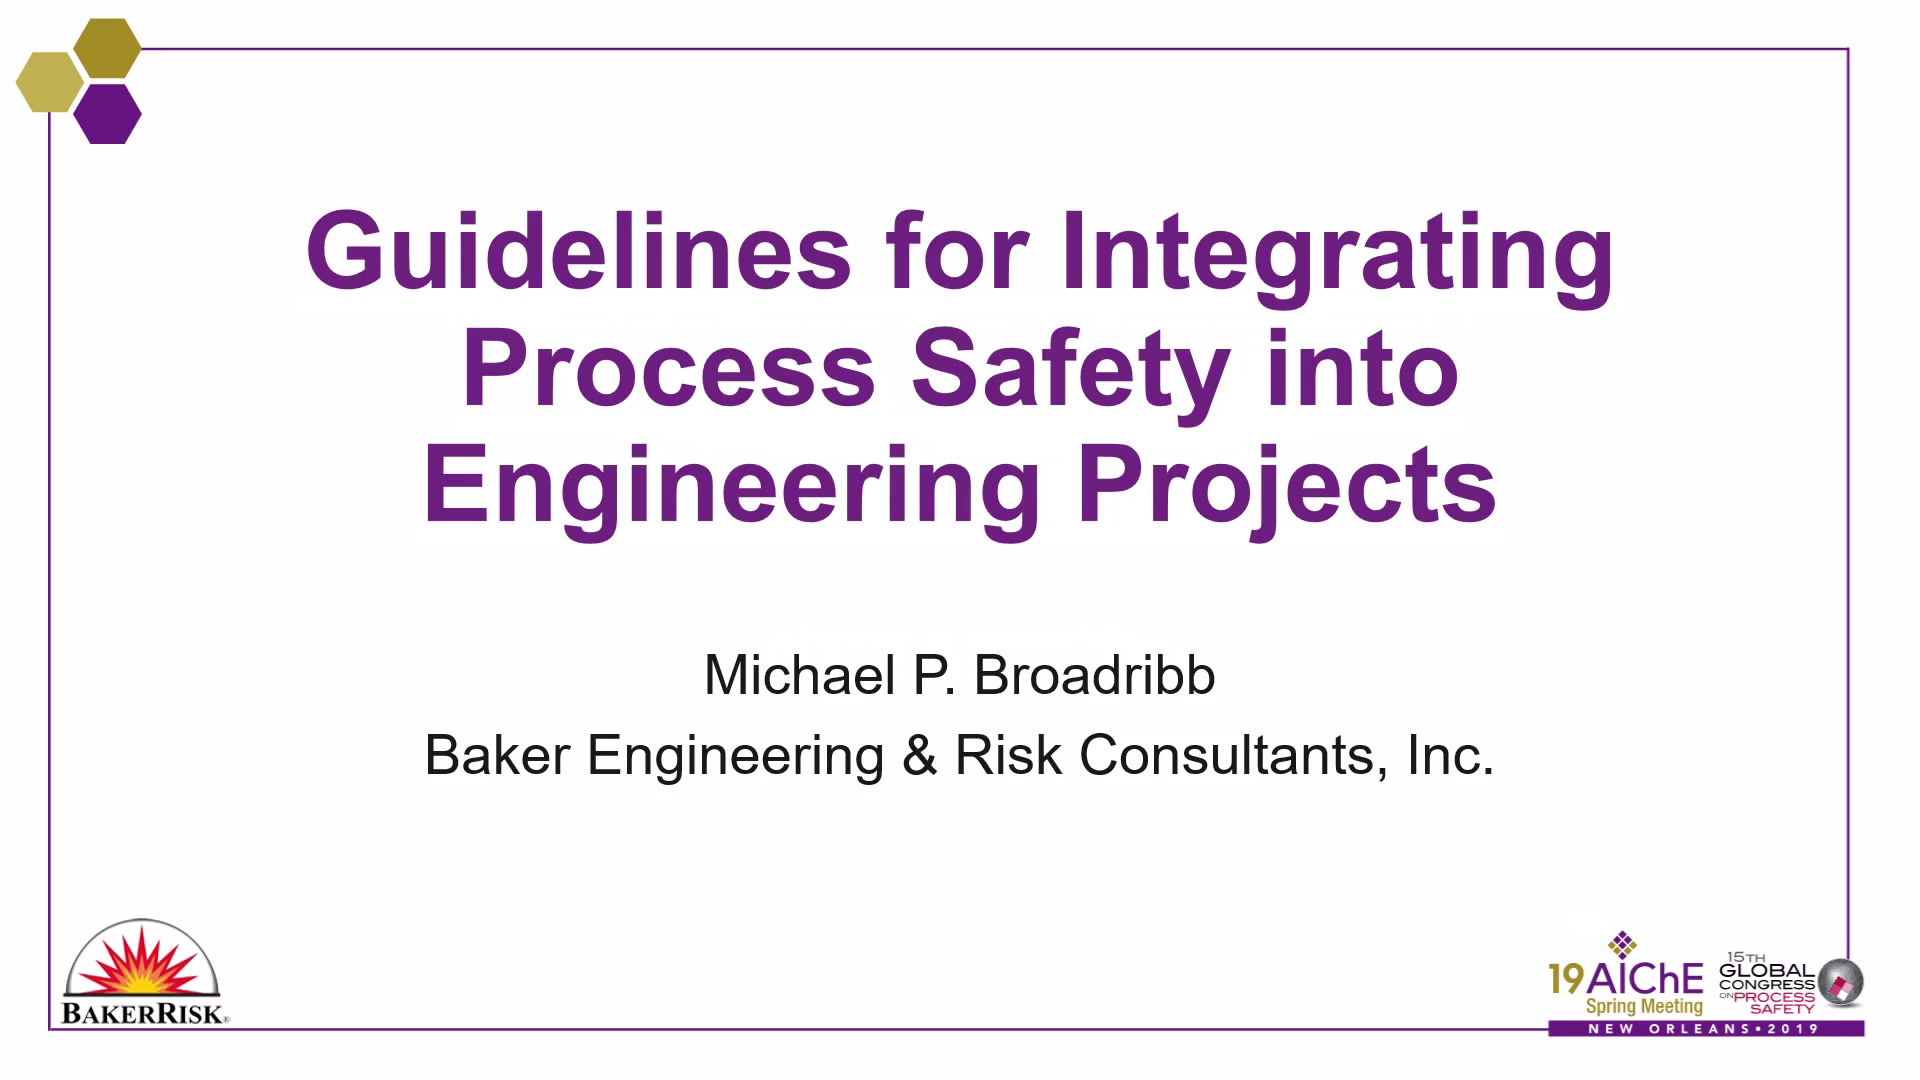 Guidelines for Integrating Process Safety into Engineering